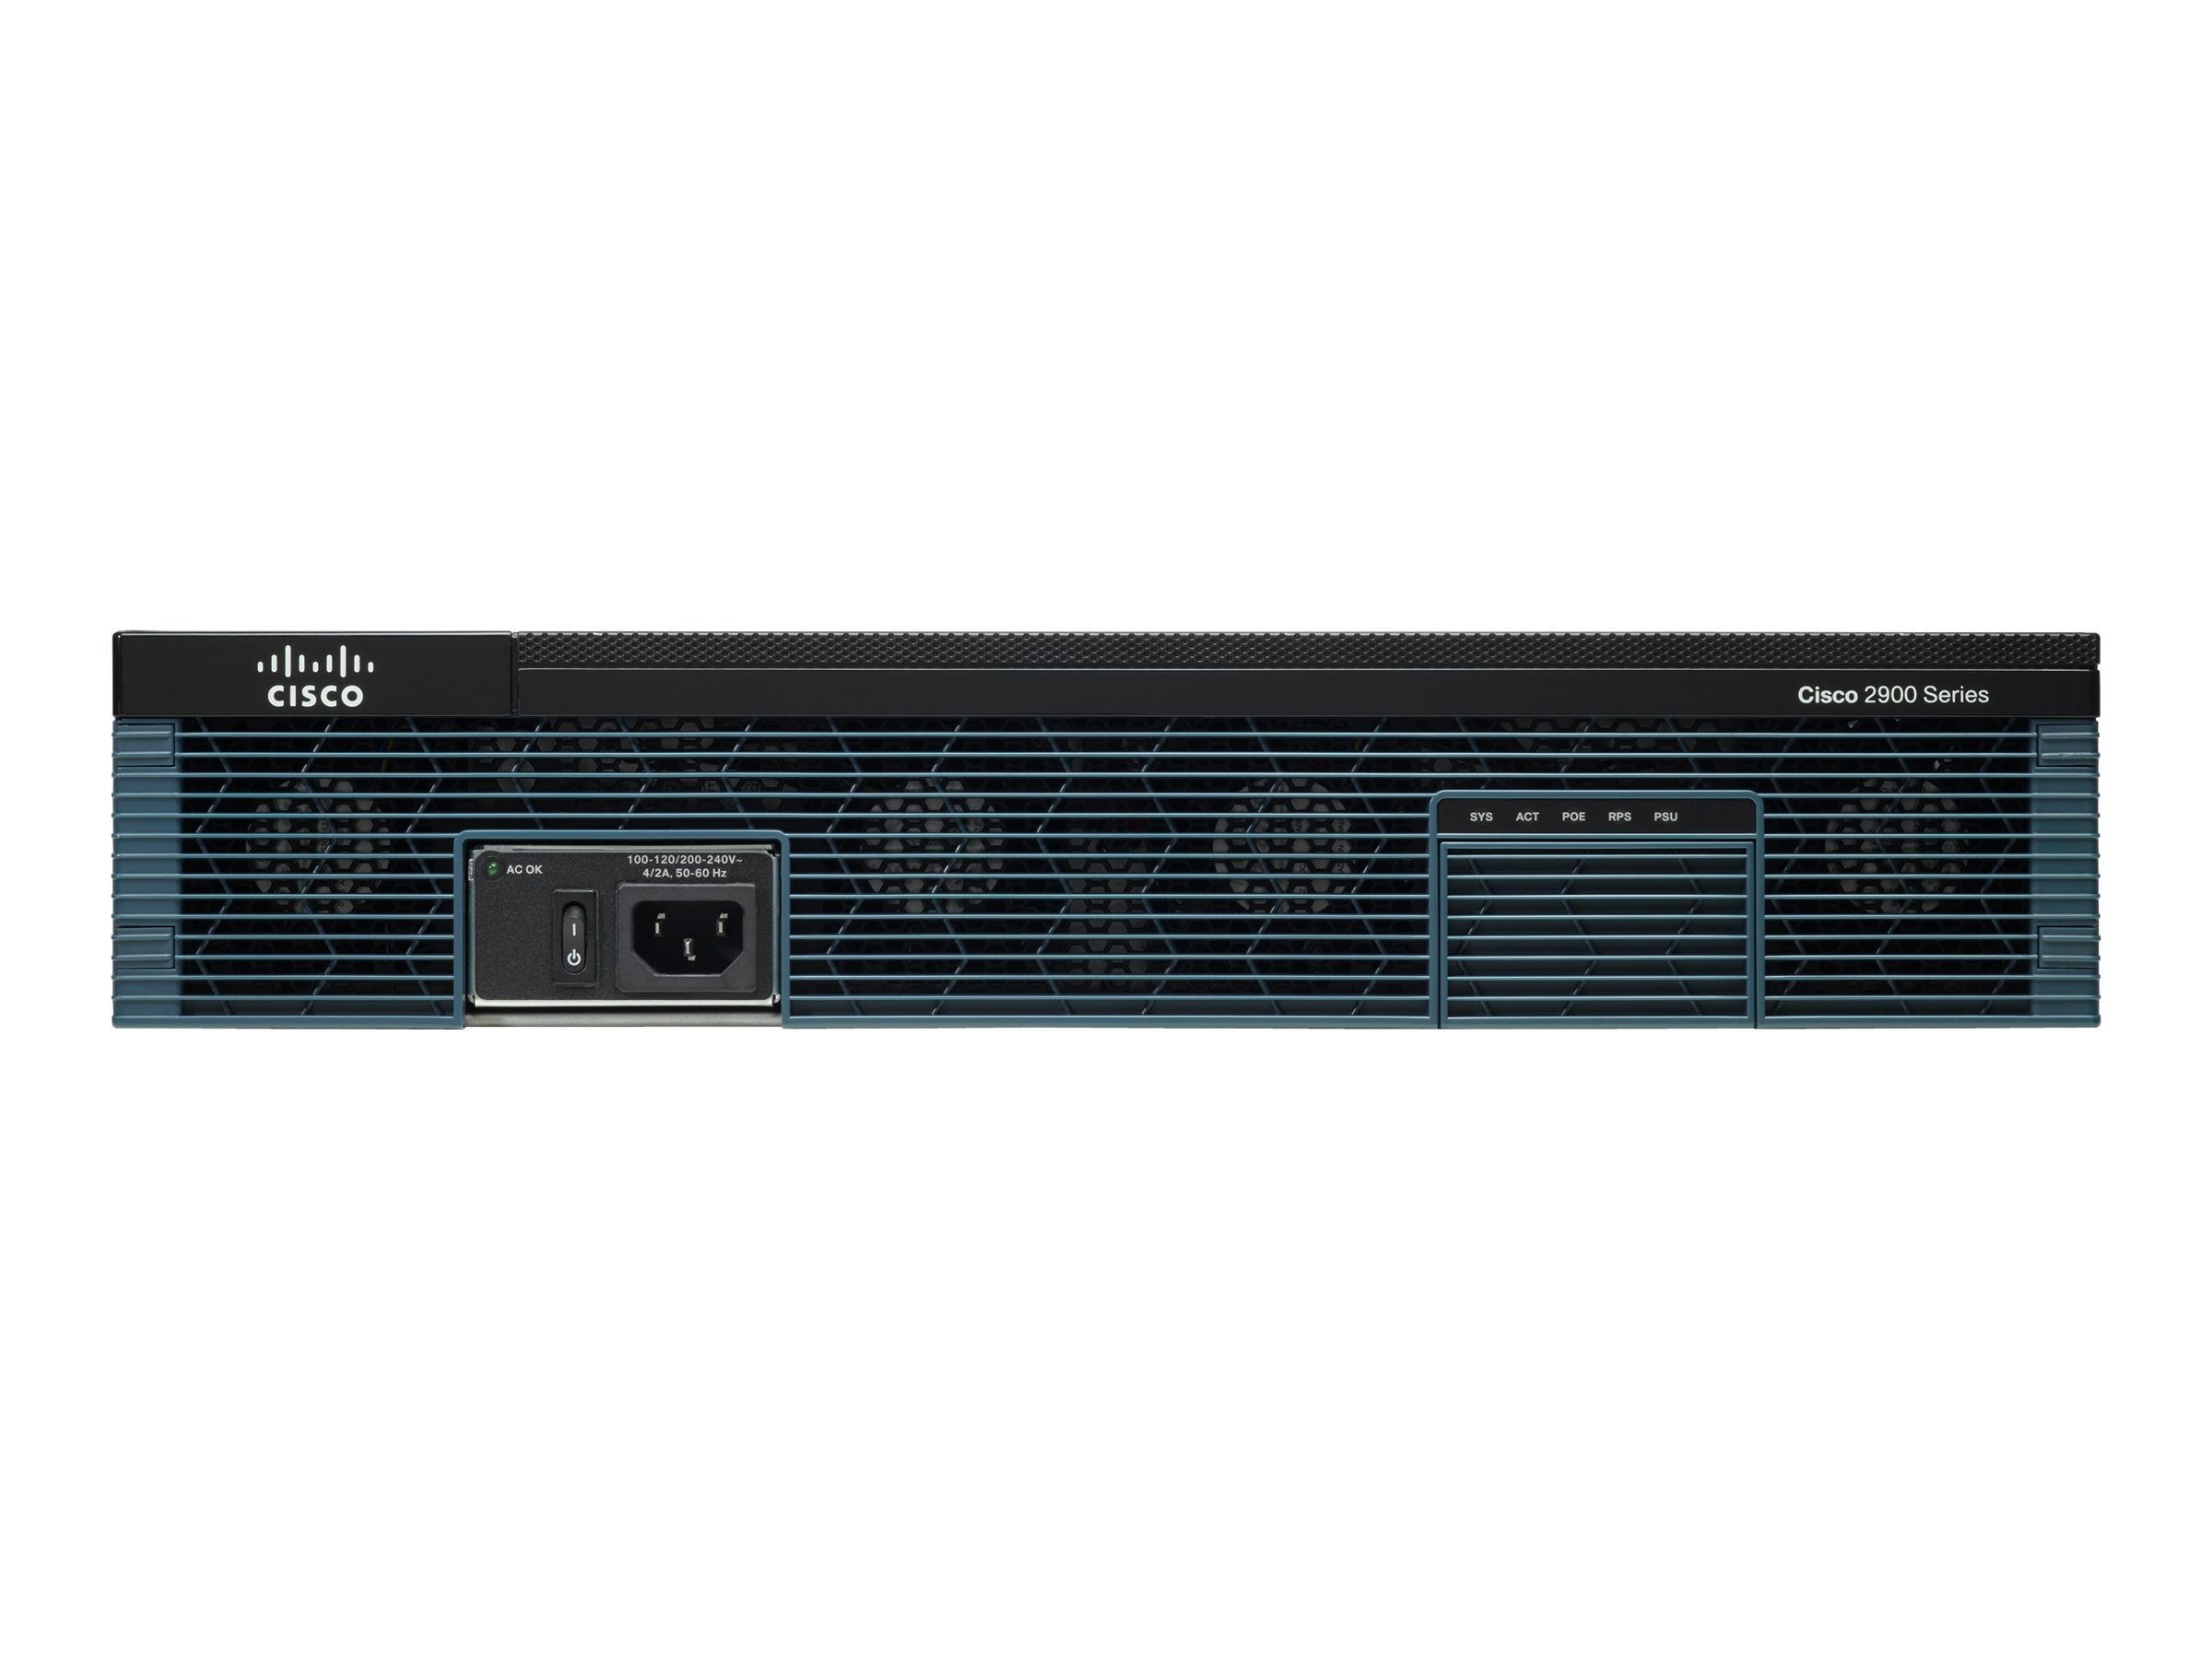 Cisco CISCO2921/K9 Image 2